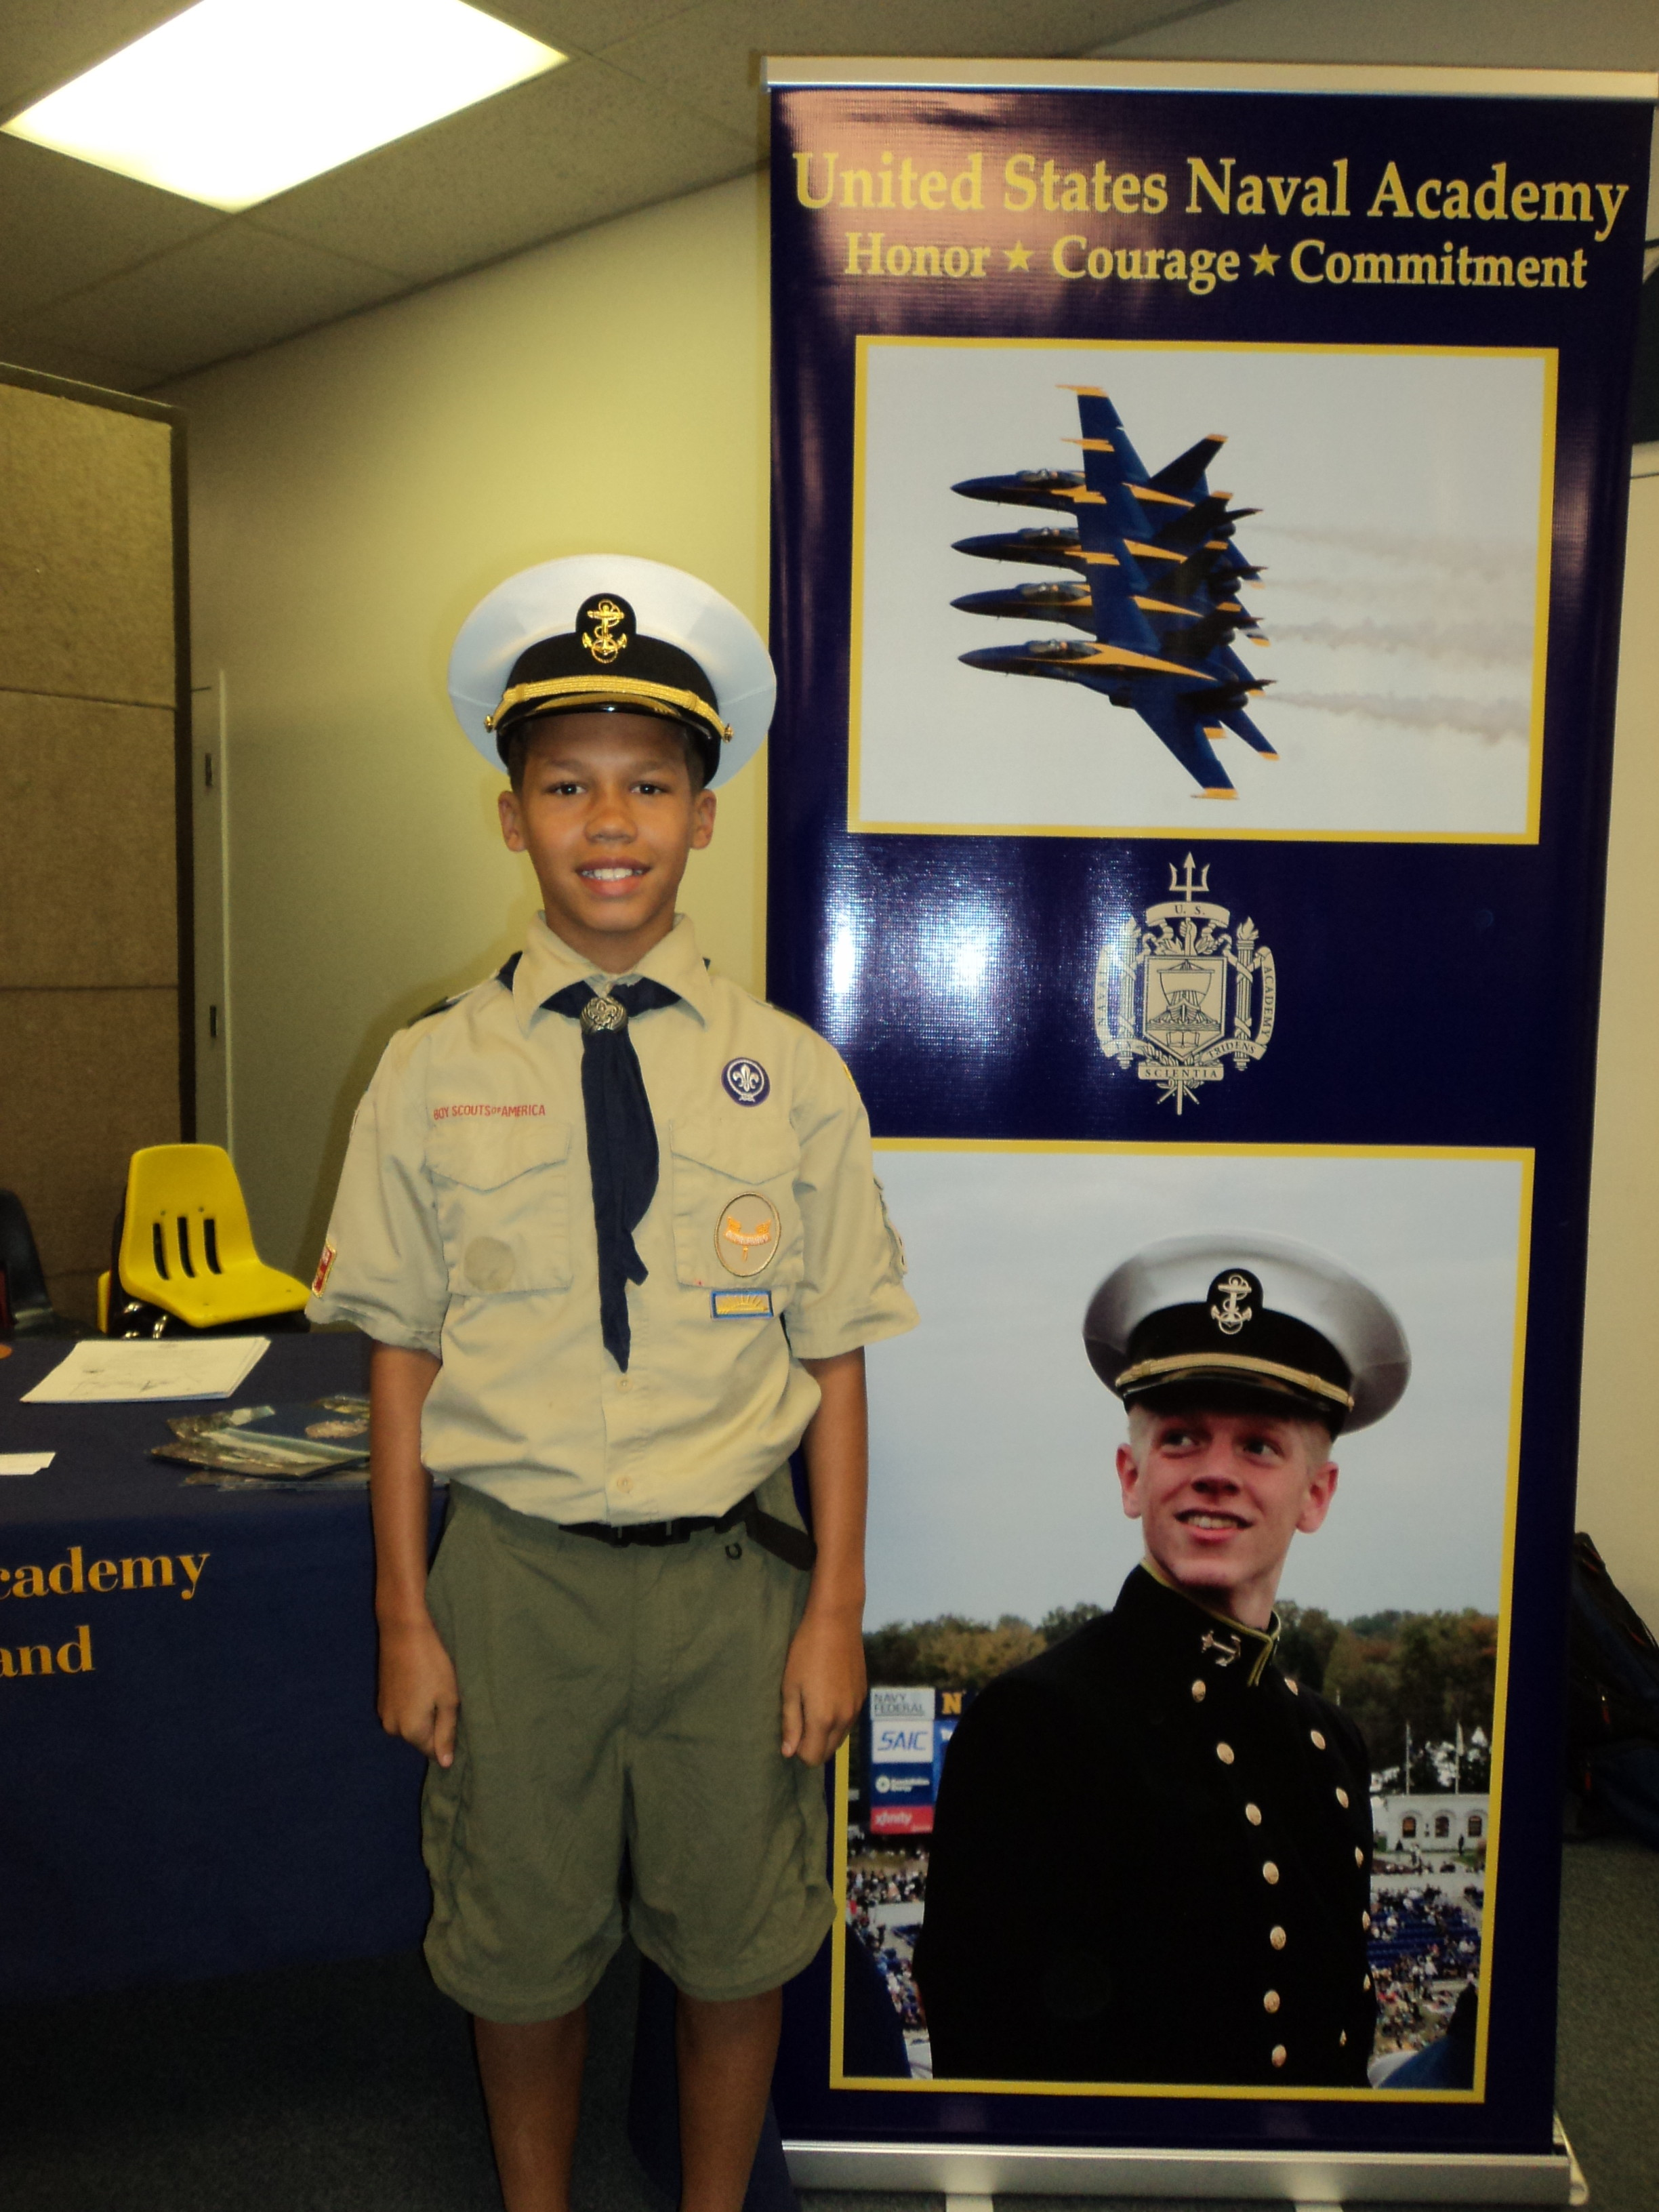 Roman looks sharp with the Midshipman Cover. Is he the next one to go to Naval Academy?